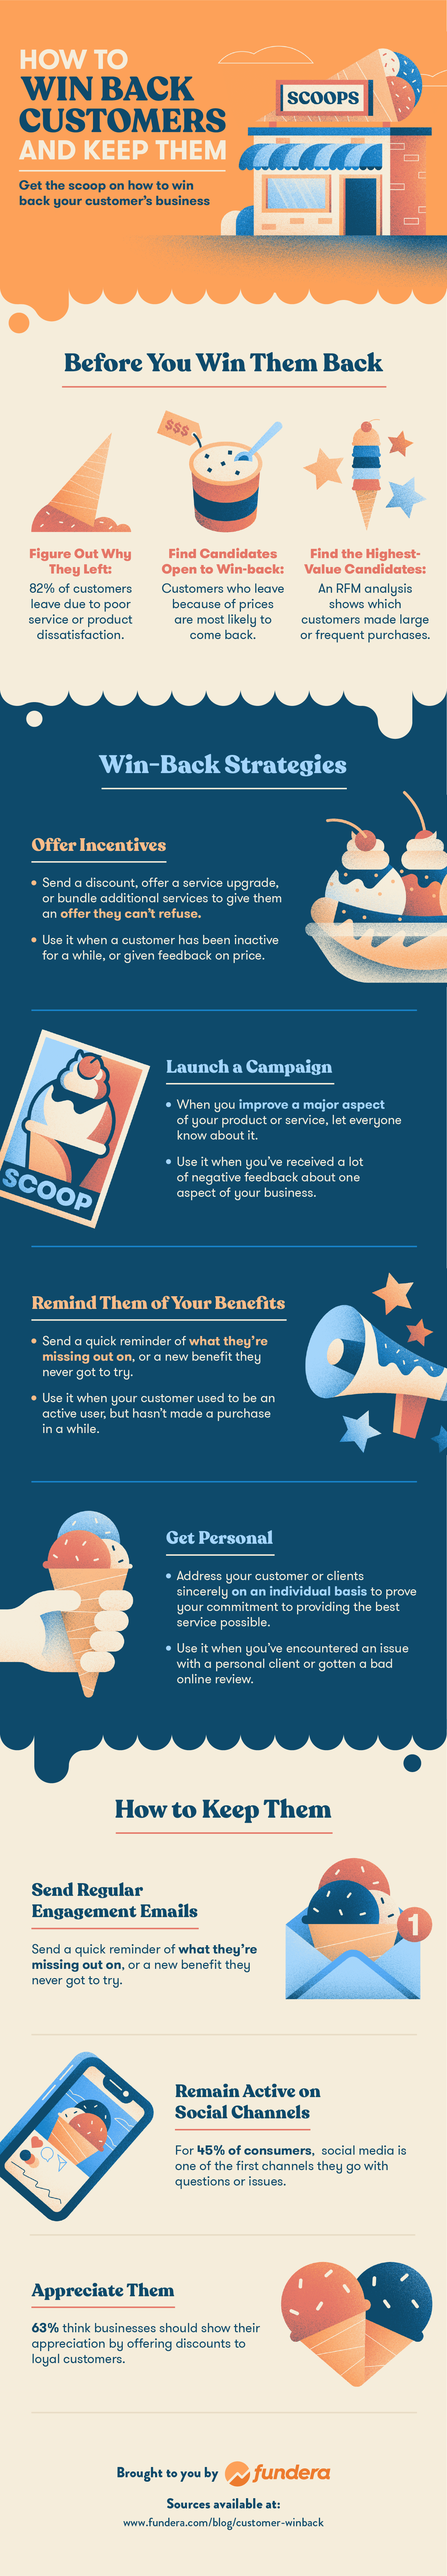 How to Win Back Customers and Keep Them